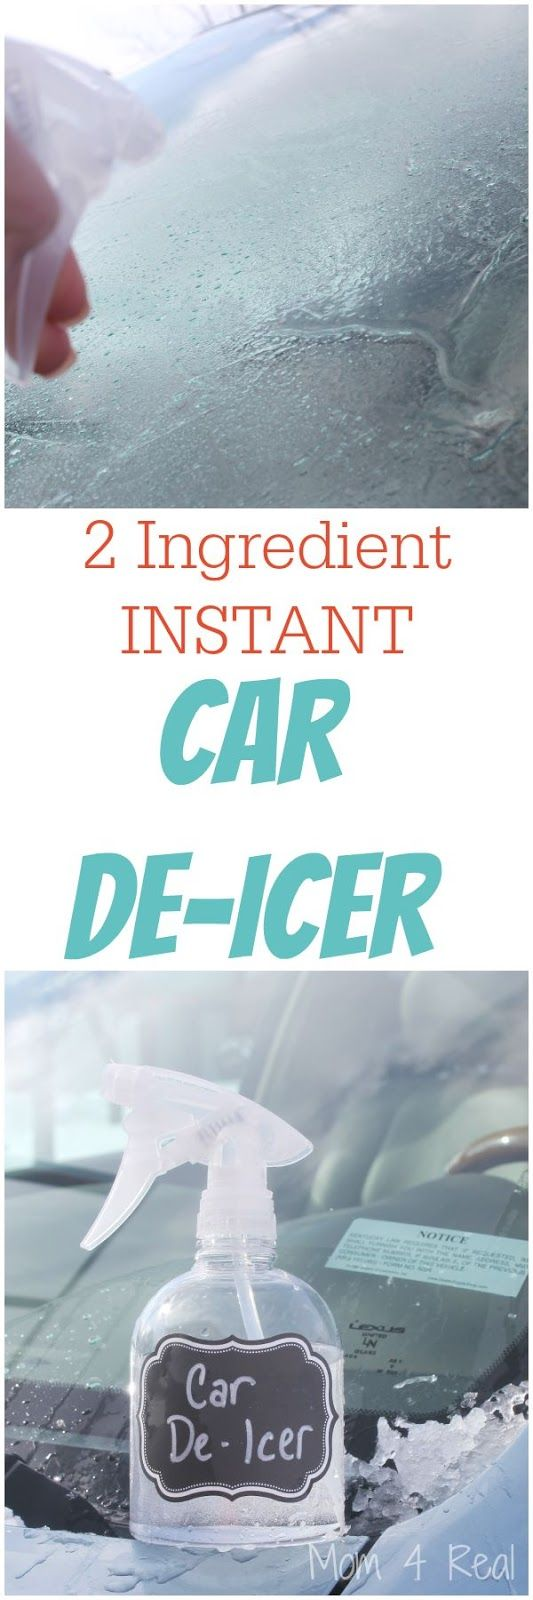 2 INGREDIENT HOMEMADE CAR DE-ICER SPRAY – REMOVES ICE IN SECONDS | ADLUR